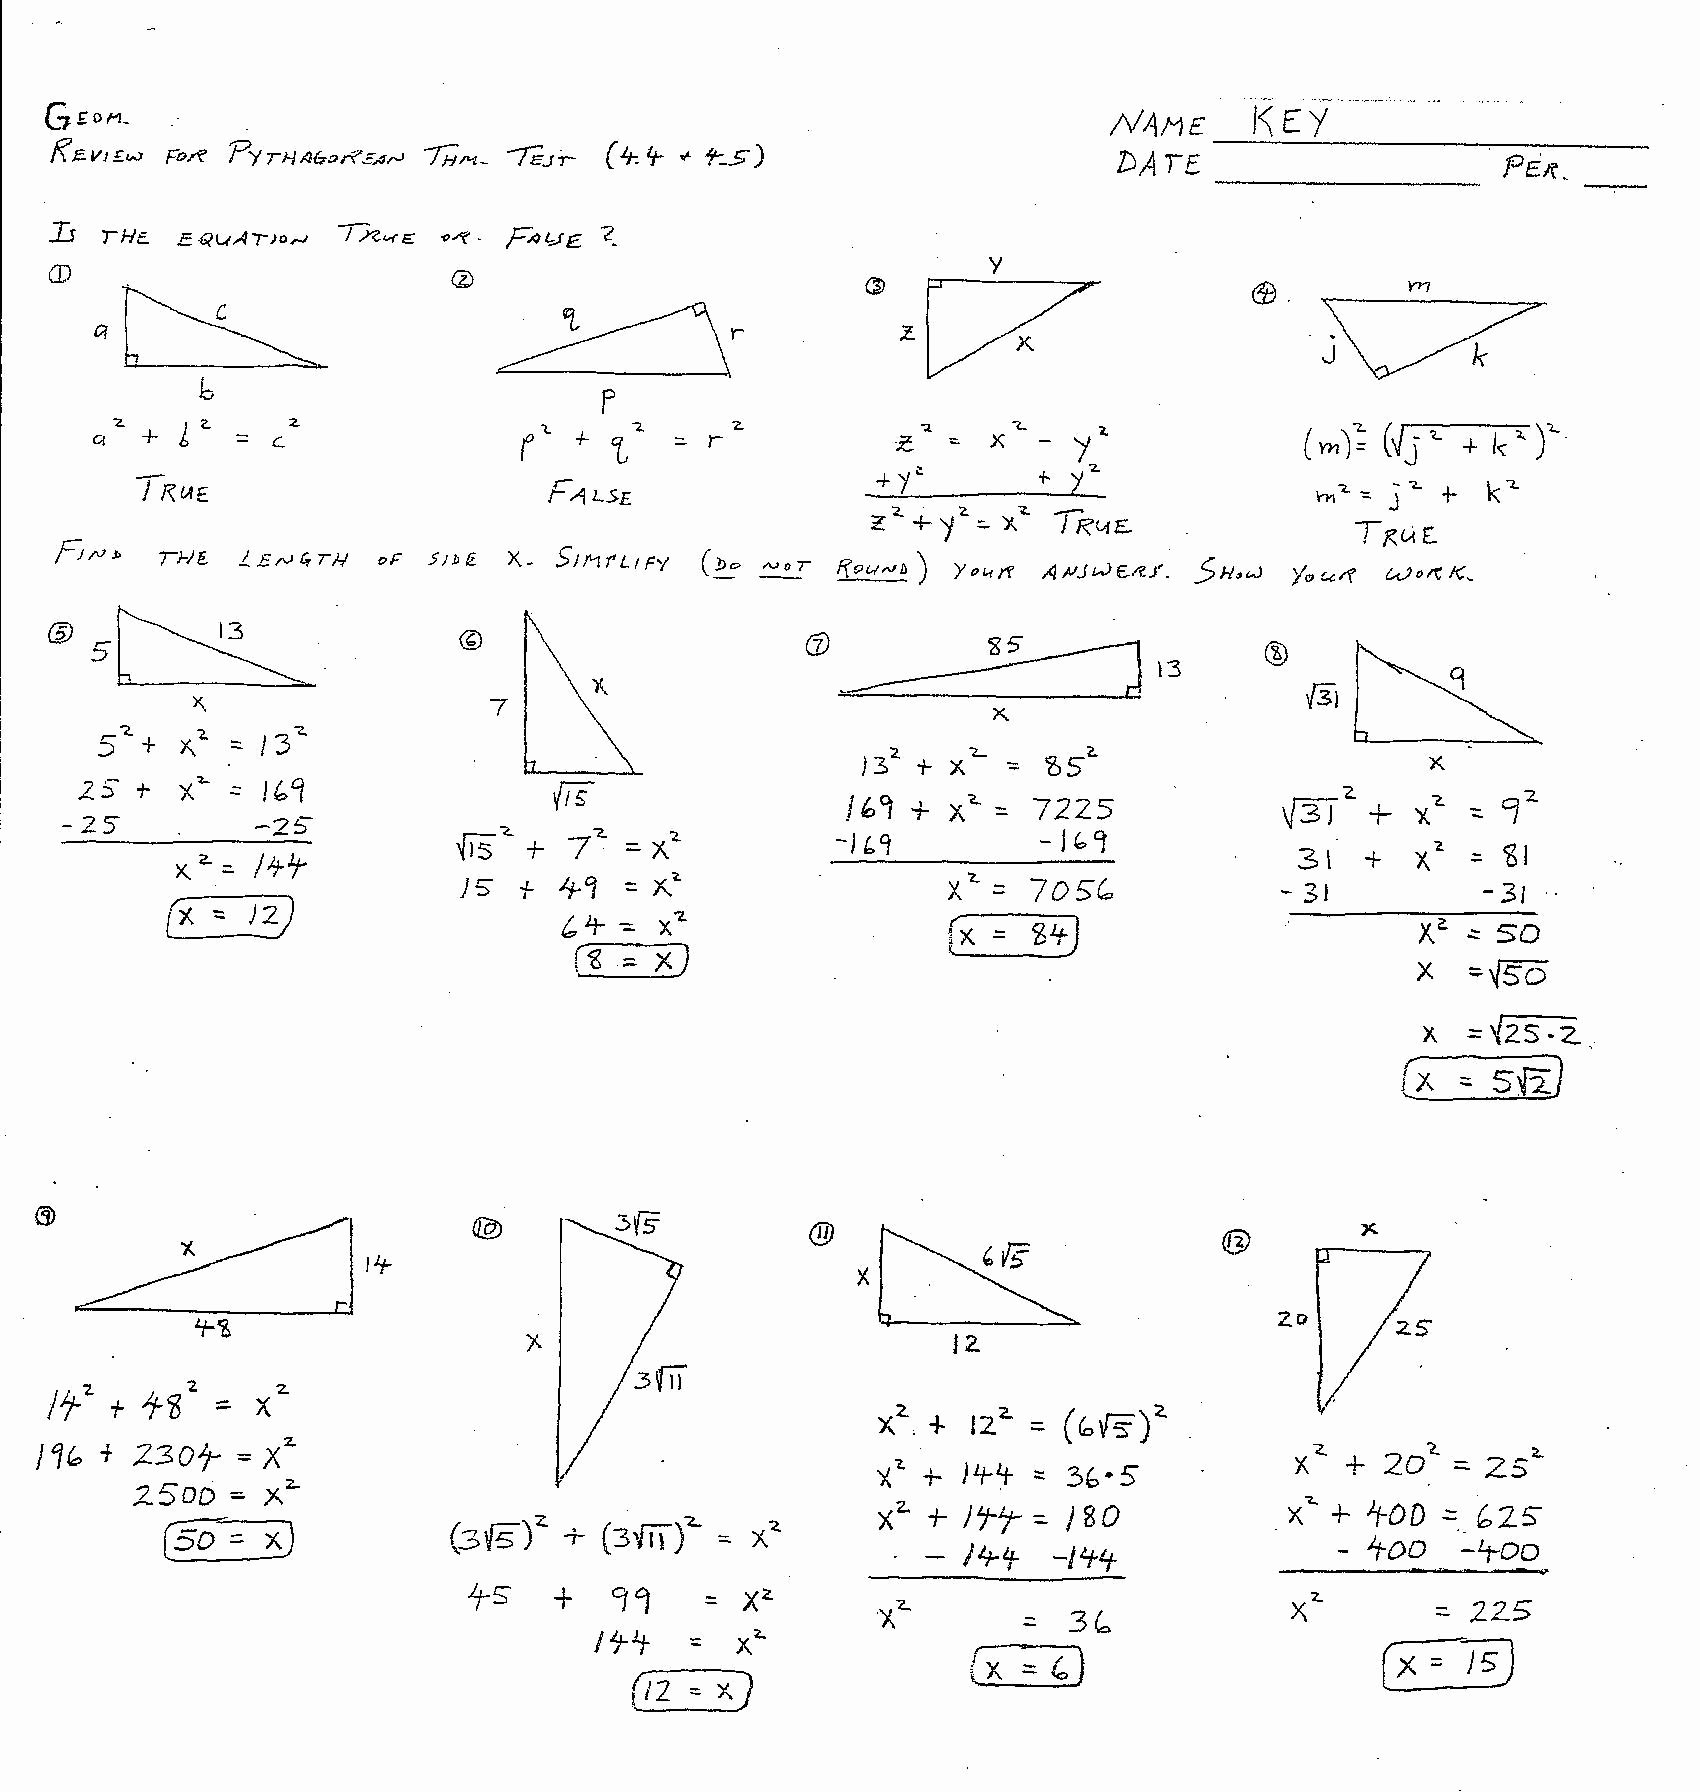 Geometry Worksheet Congruent Triangles Answers Awesome 6 Best Of Congruent Triangles Worksheet with Answer